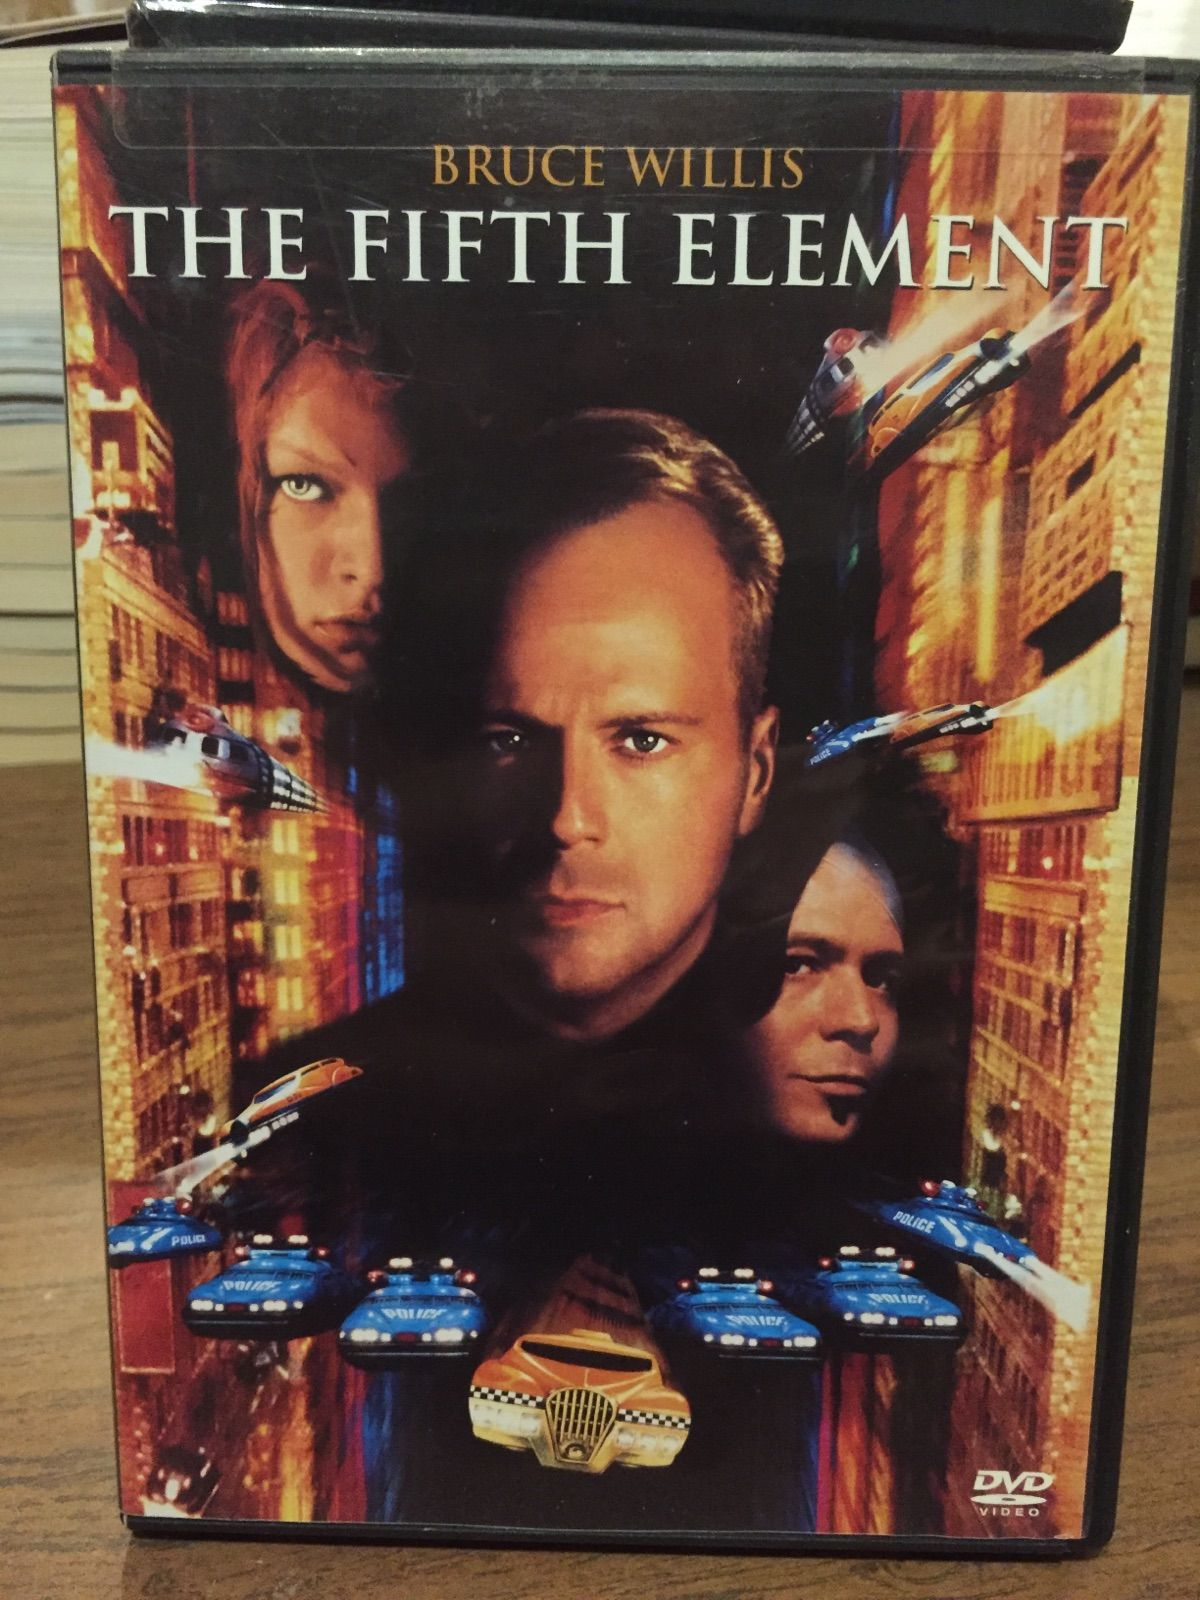 BRUCE WILLIS THE FIFTH ELEMENT Cd VIDEO BRUCE WILLIS THE FIFTH ELEMENT Cd VIDEO   https://nemb.ly/p/B131KwpHl